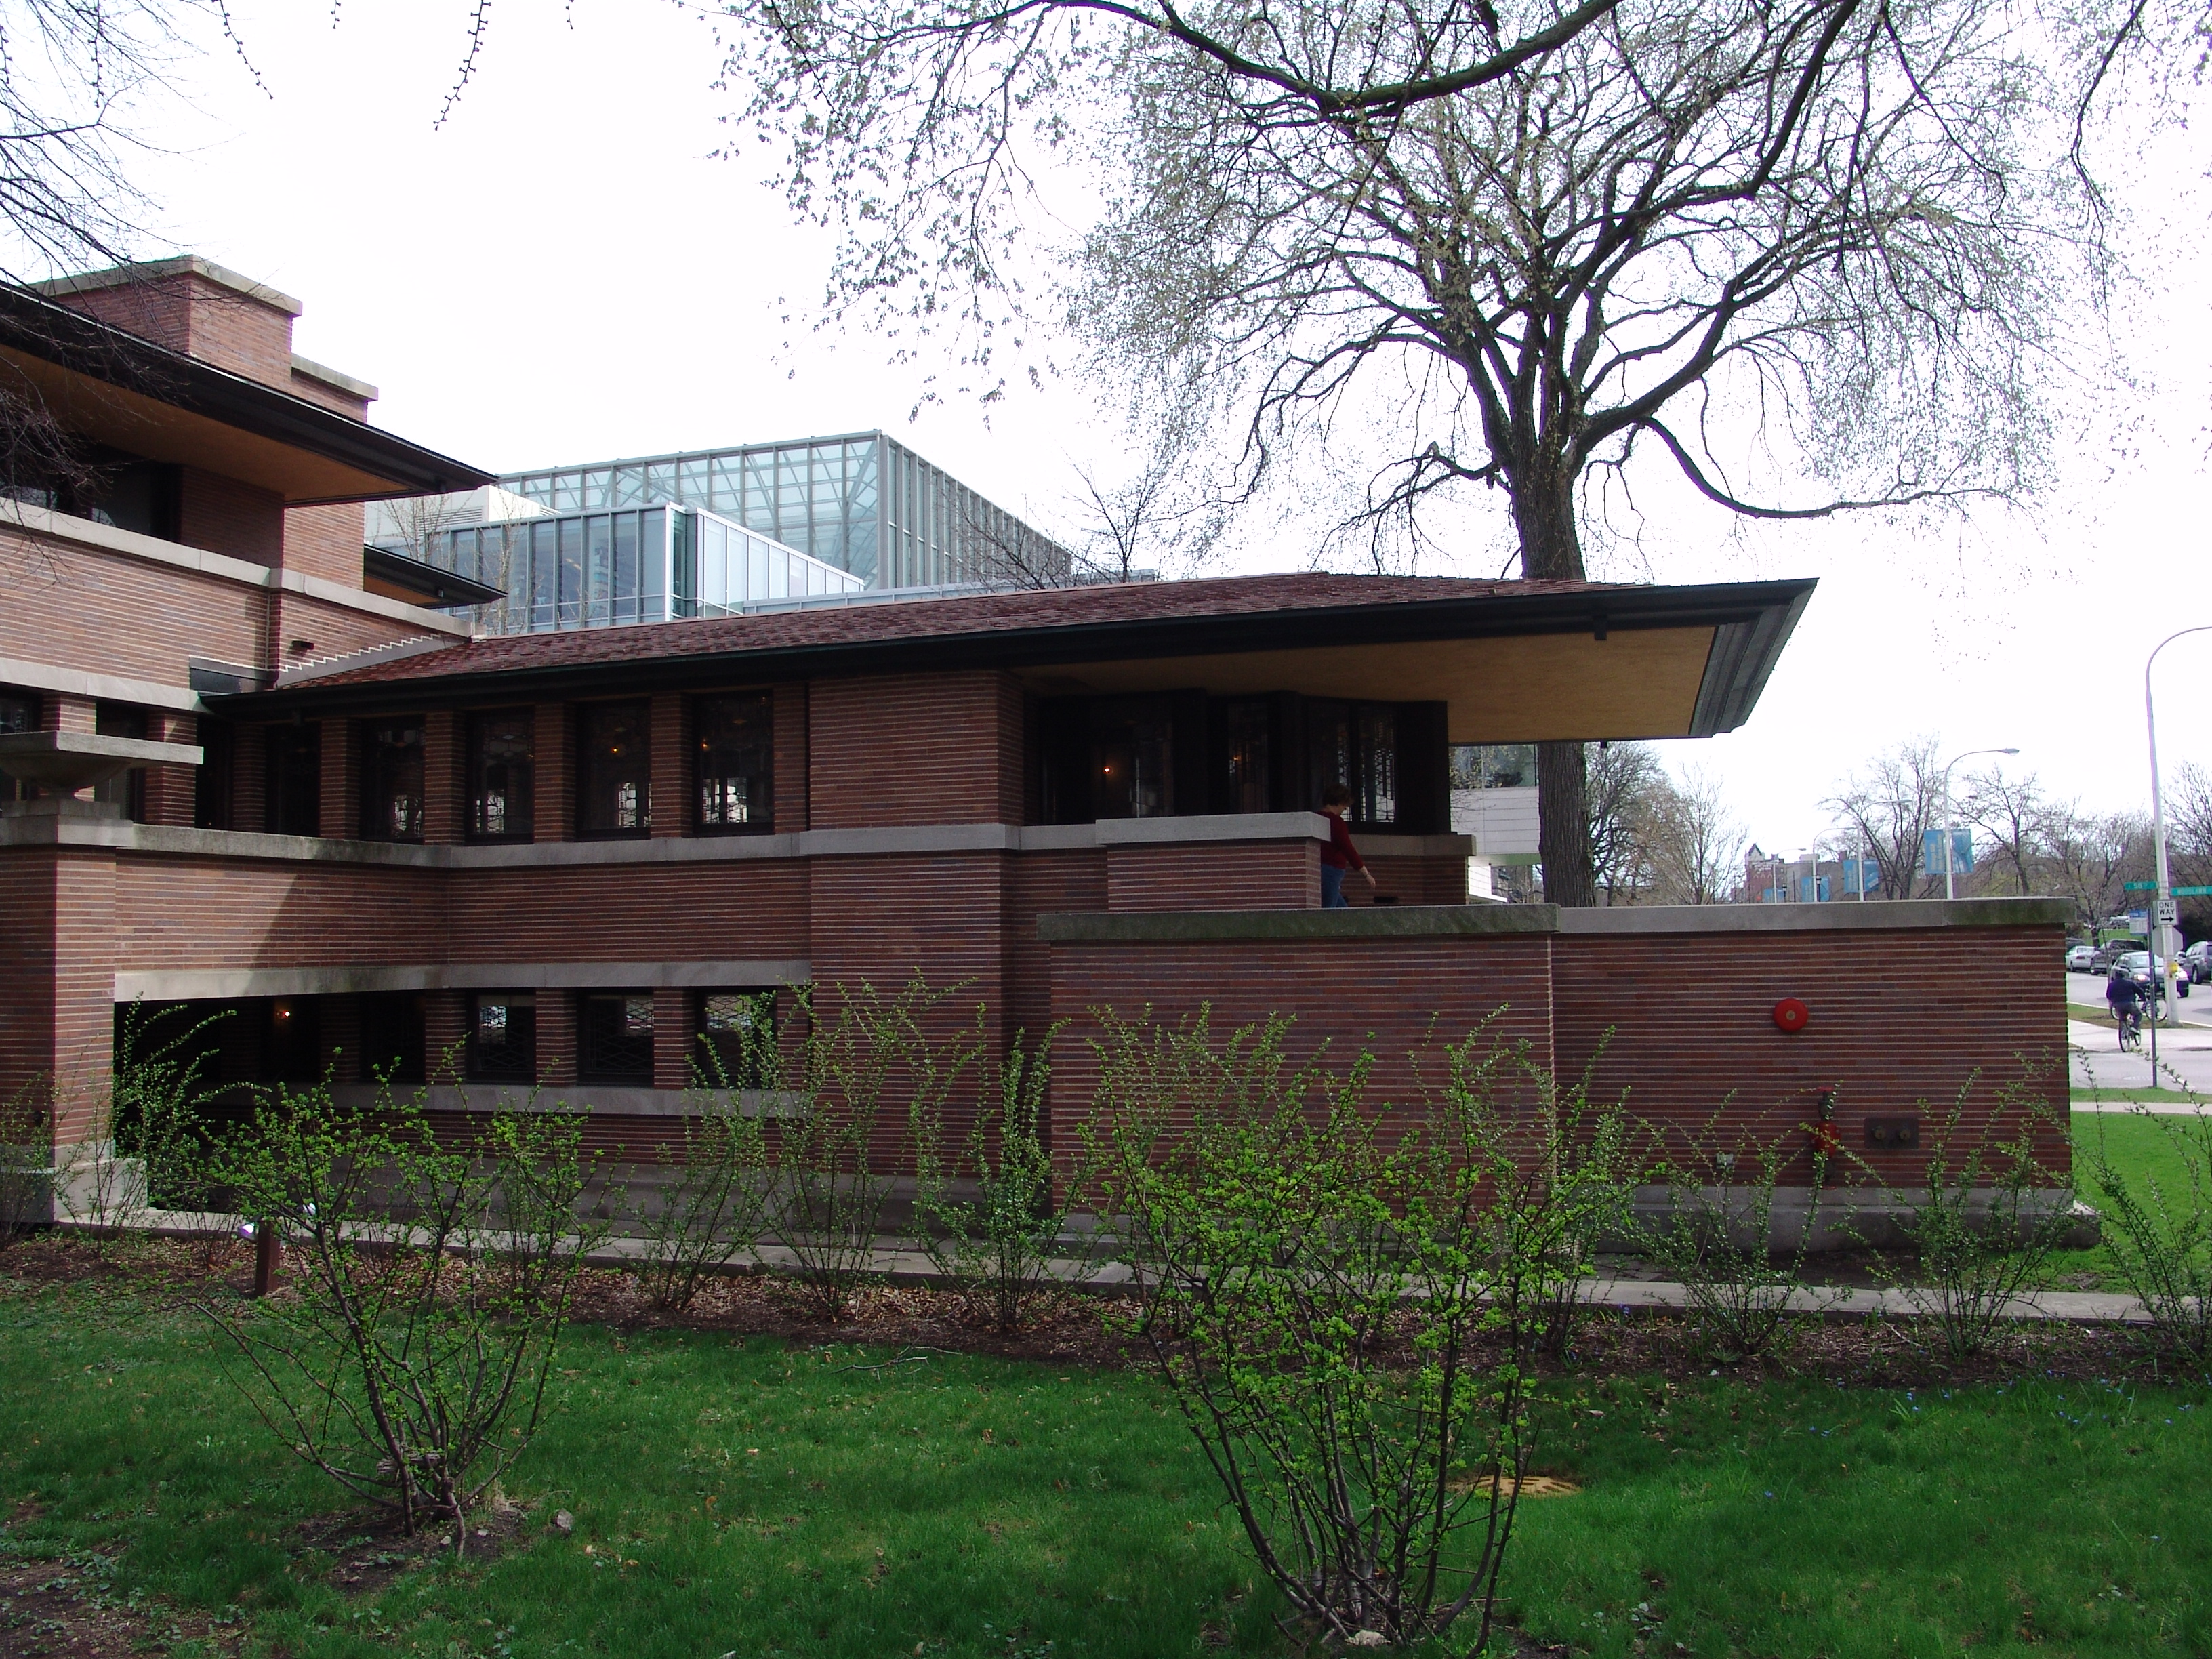 1000 images about flw robie house on pinterest frank for Wright architecte